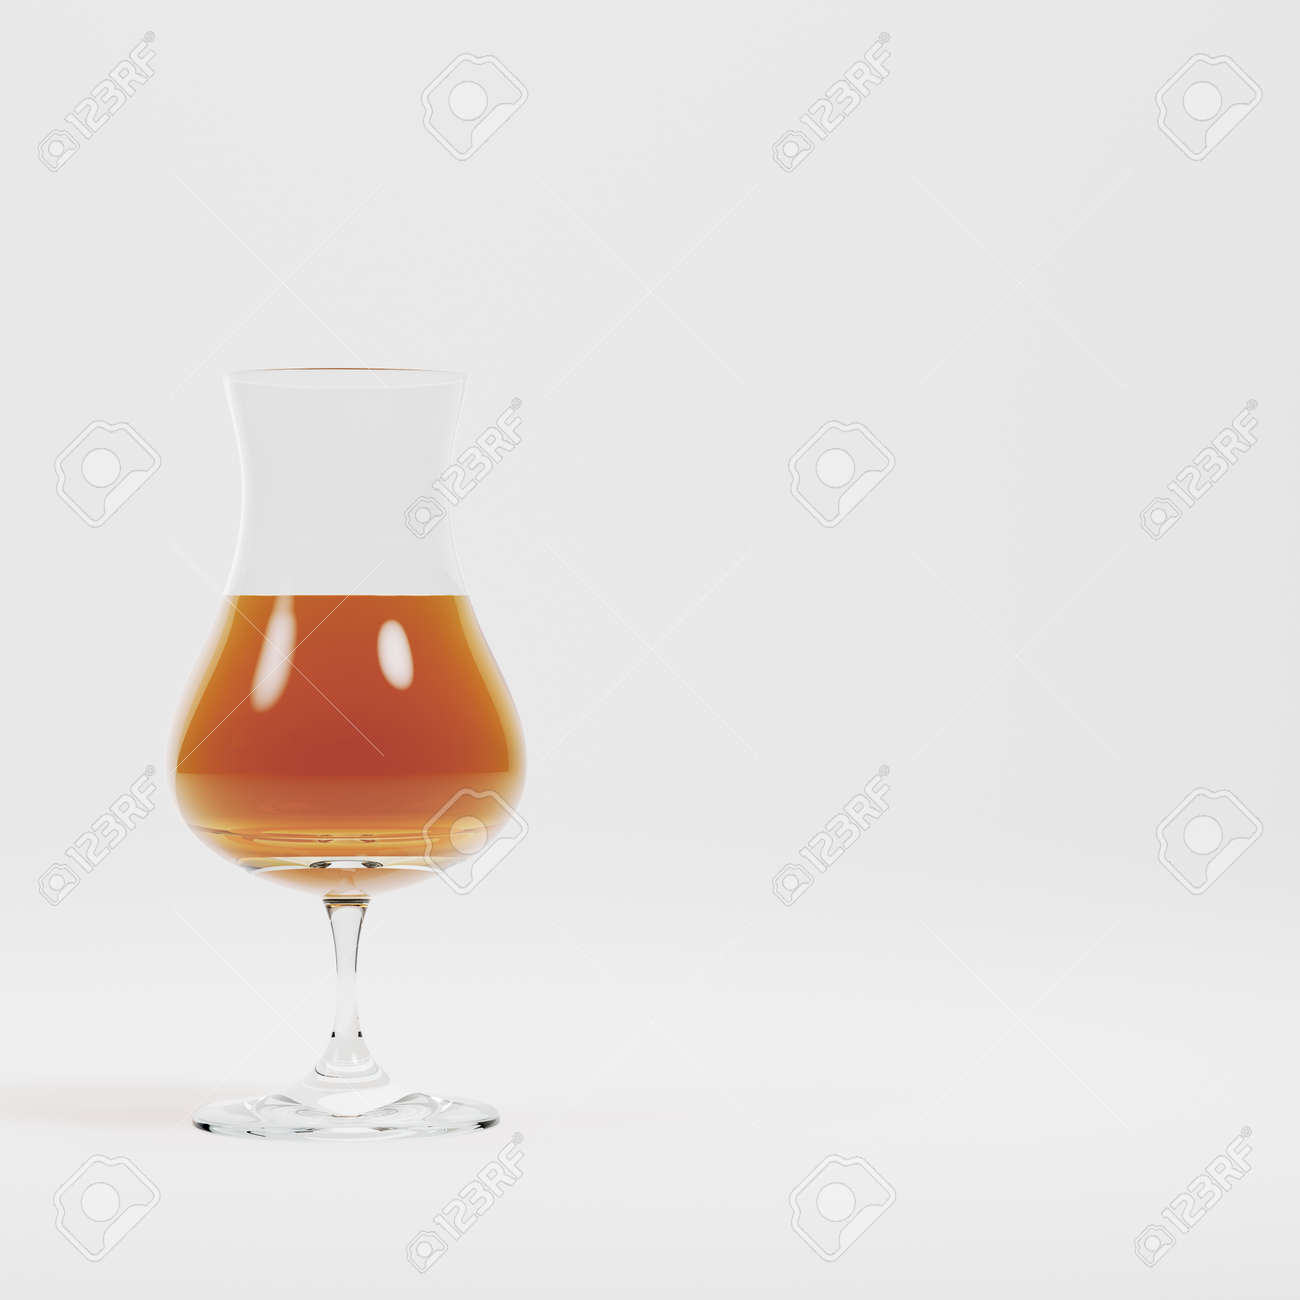 Glass with alcohol on bright background. 3d render - 170125079